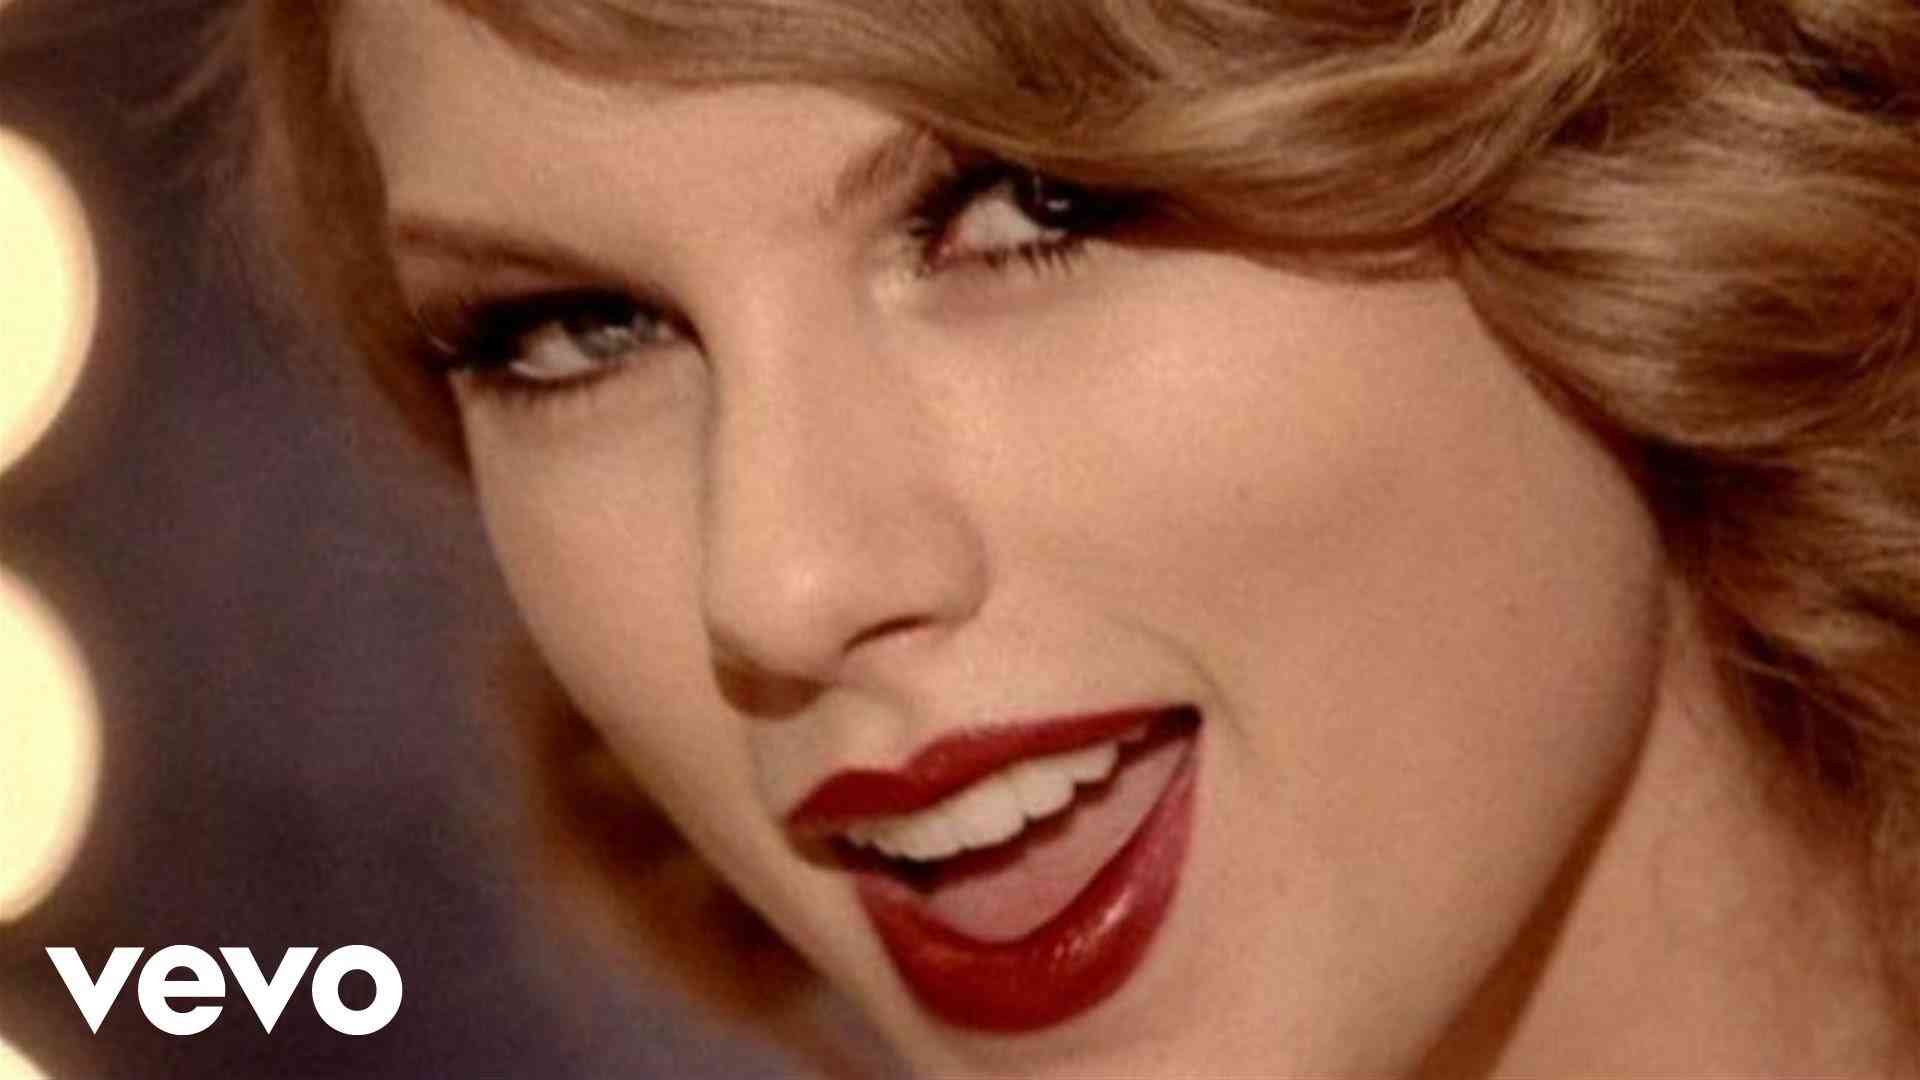 Taylor Swift - Mean - YouTube